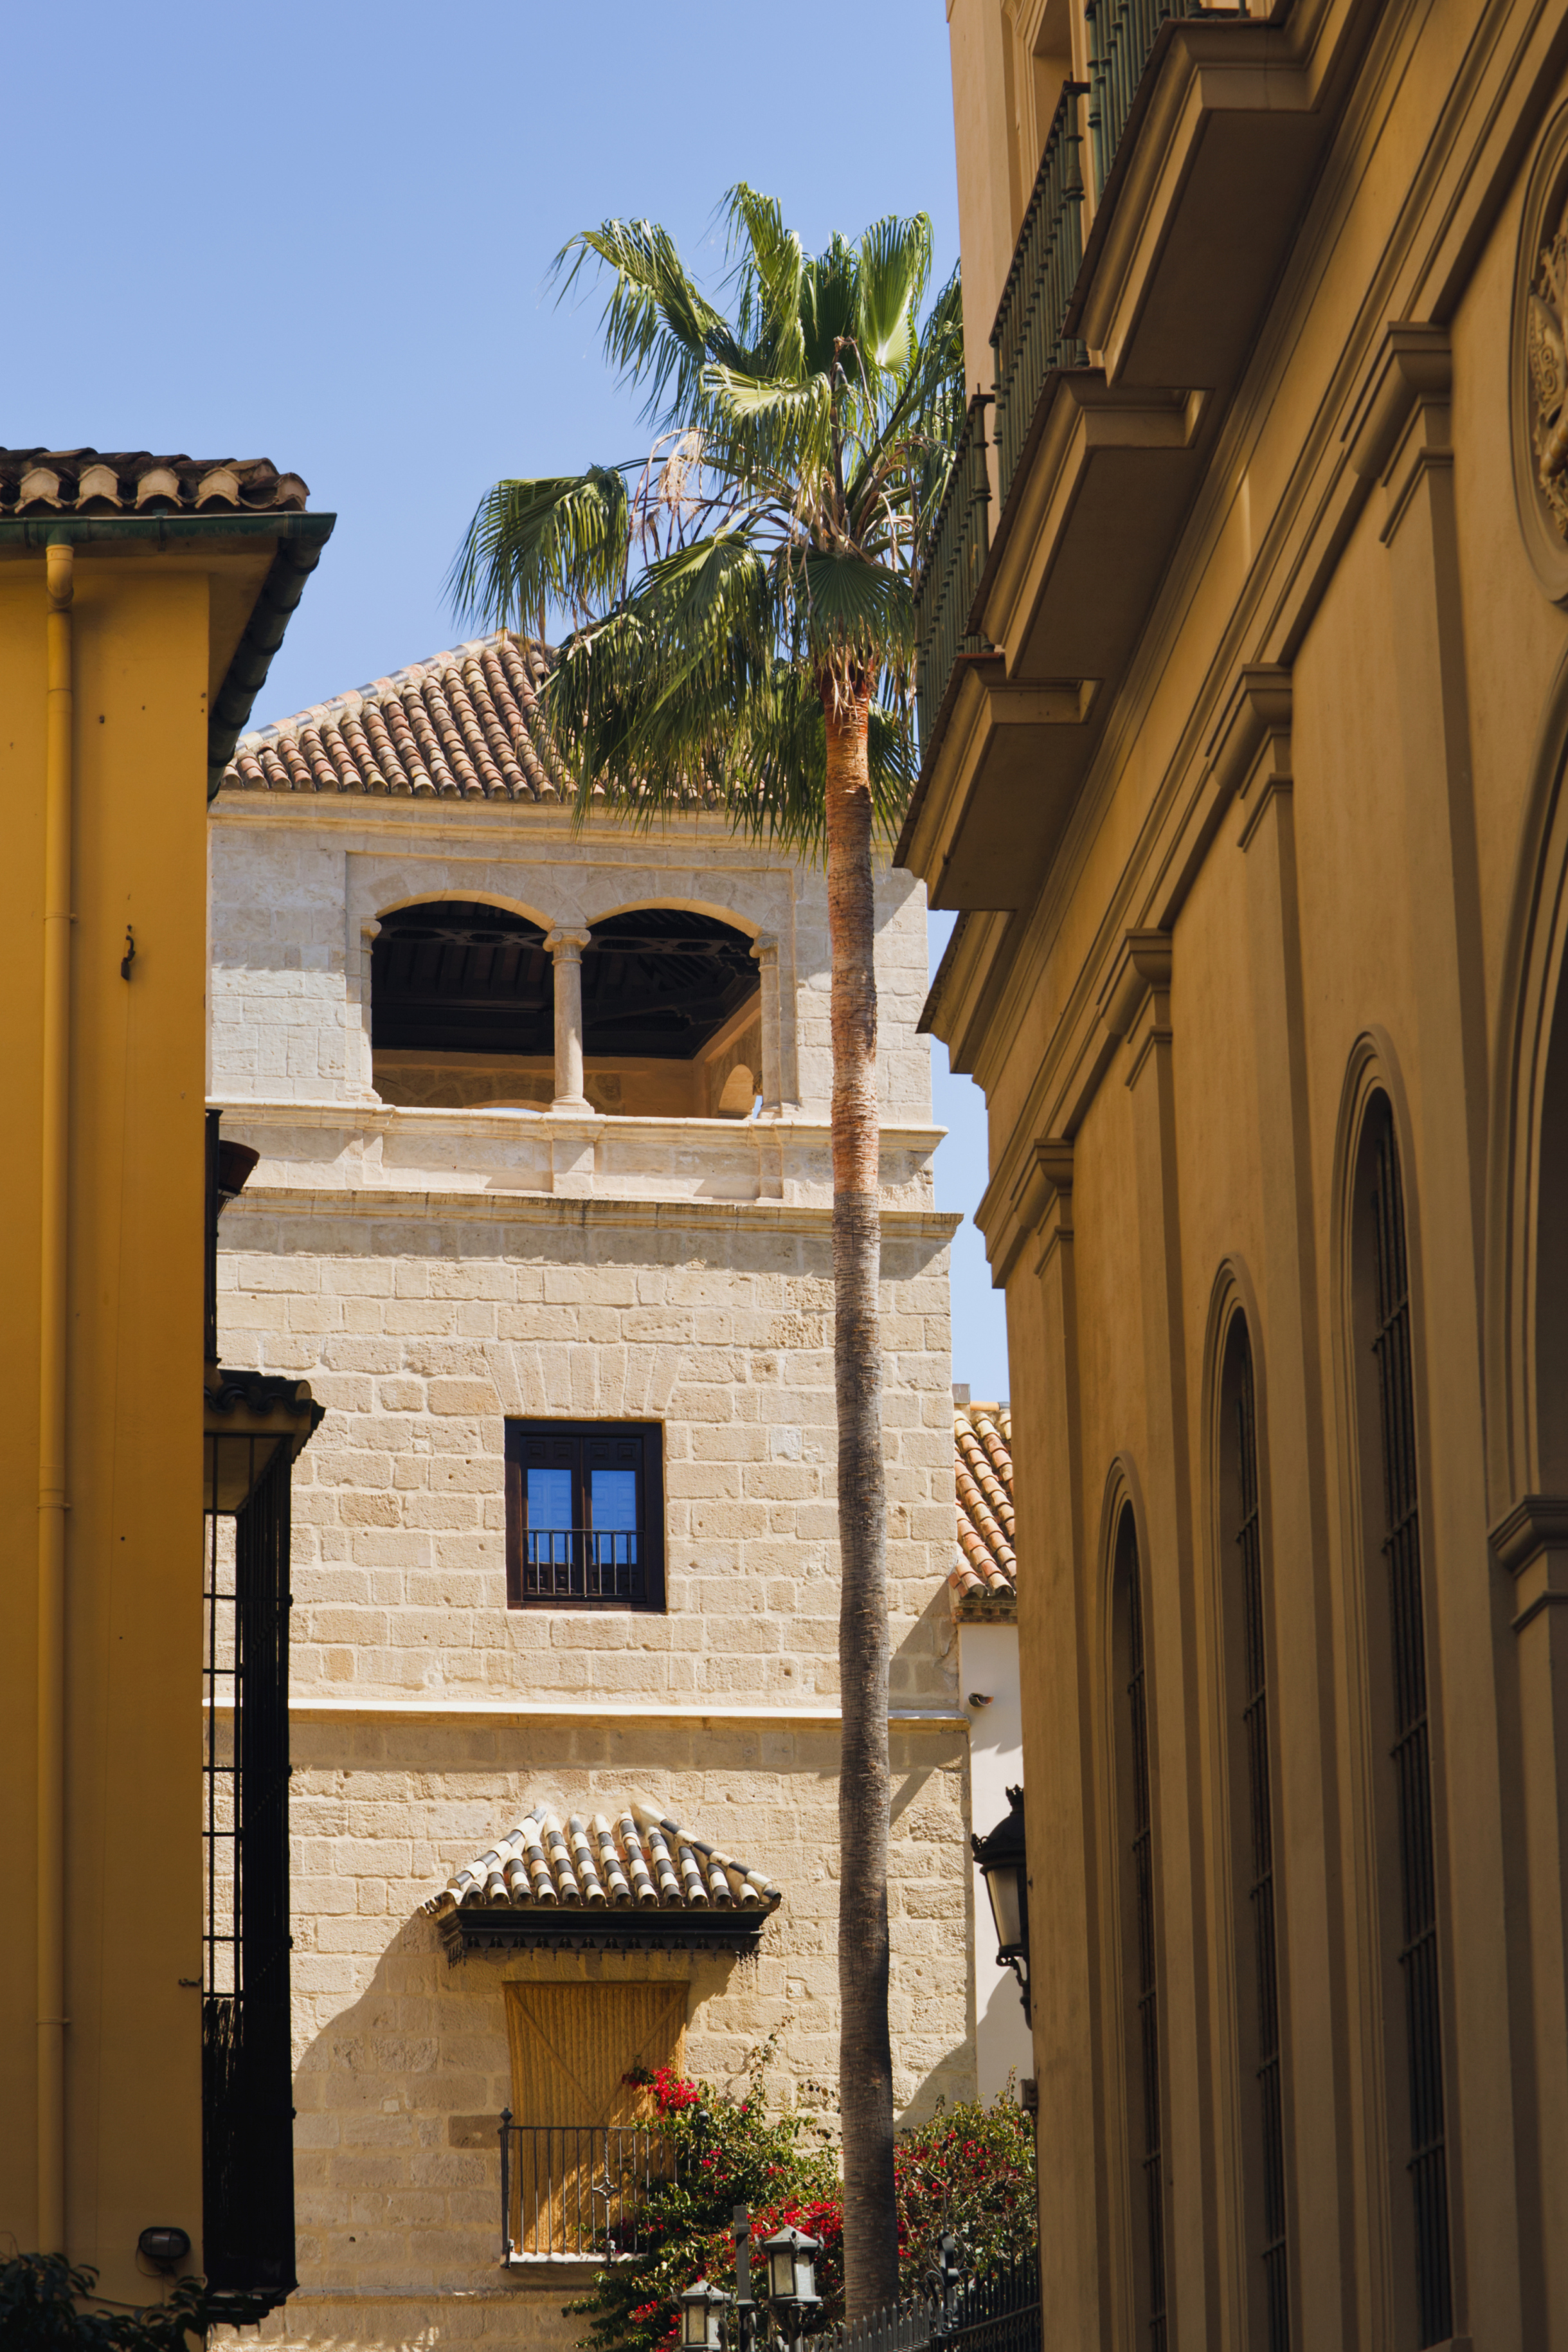 Museo Picasso Malaga.Museo Picasso Malaga Malaga Spain Attractions Lonely Planet